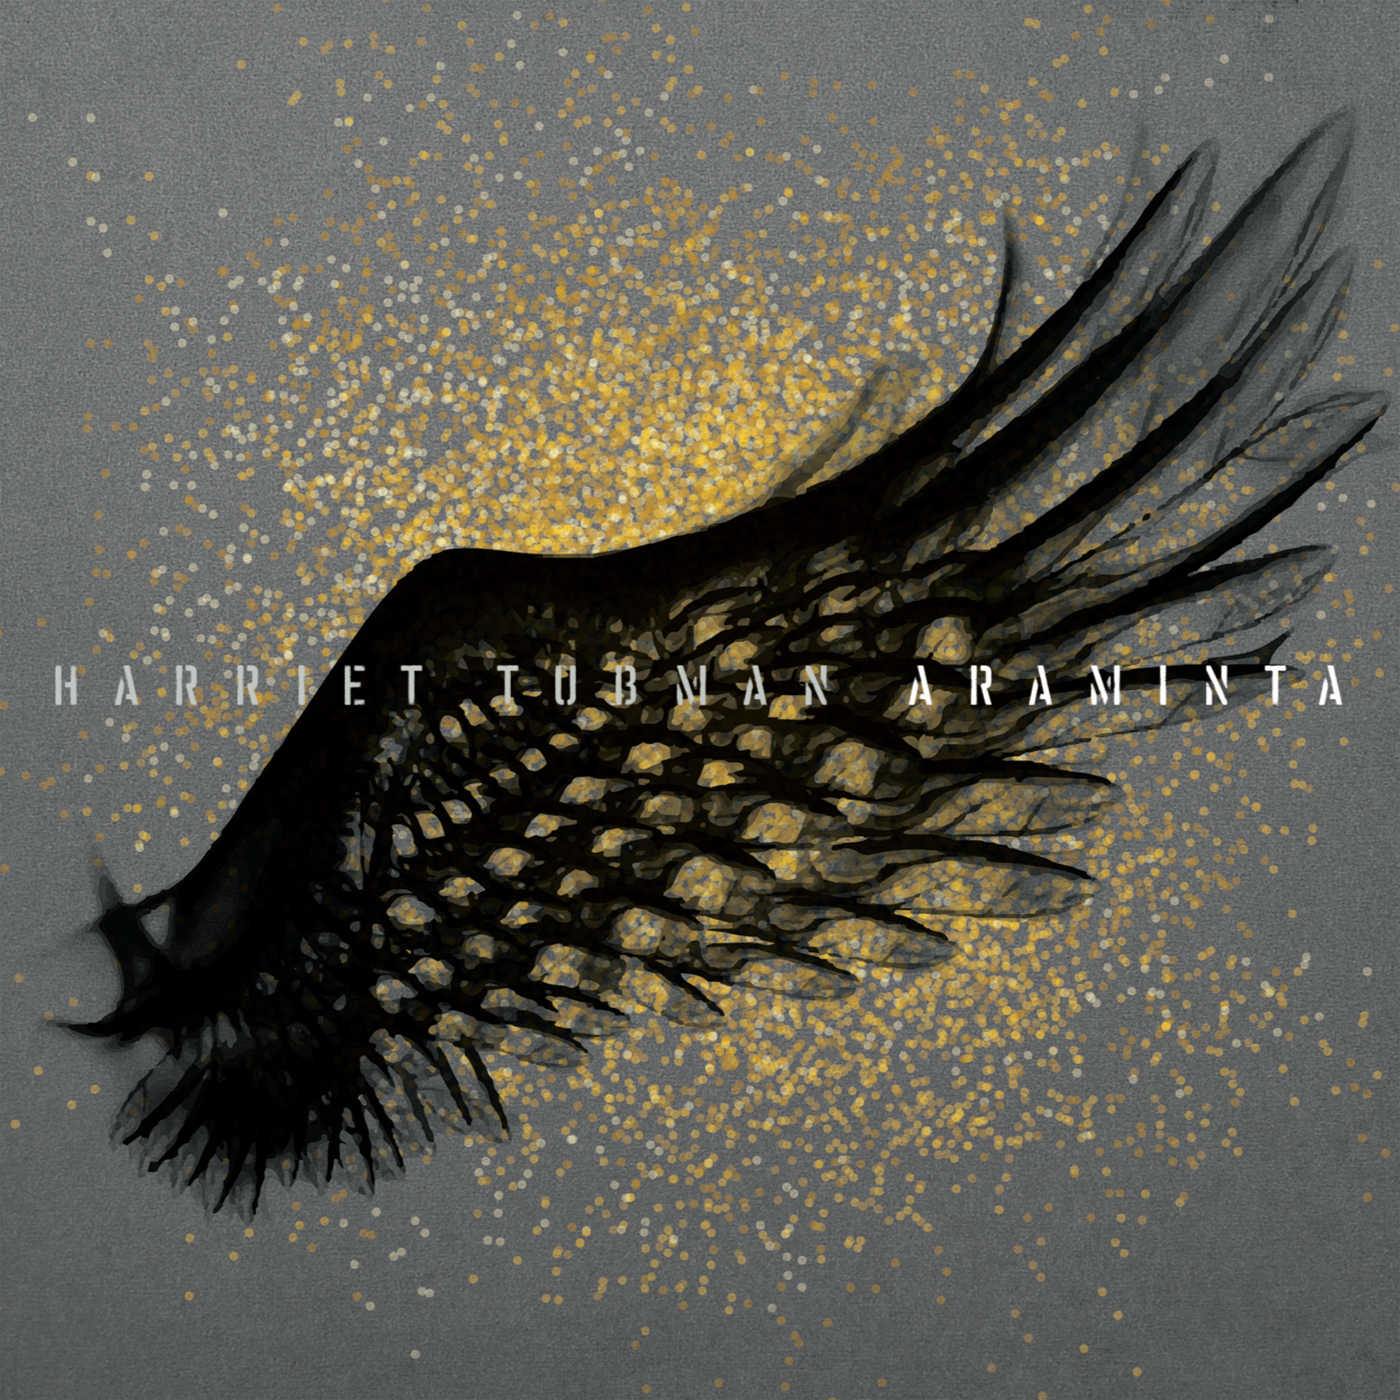 Araminta  by   Harriet Tubman: The Band cover